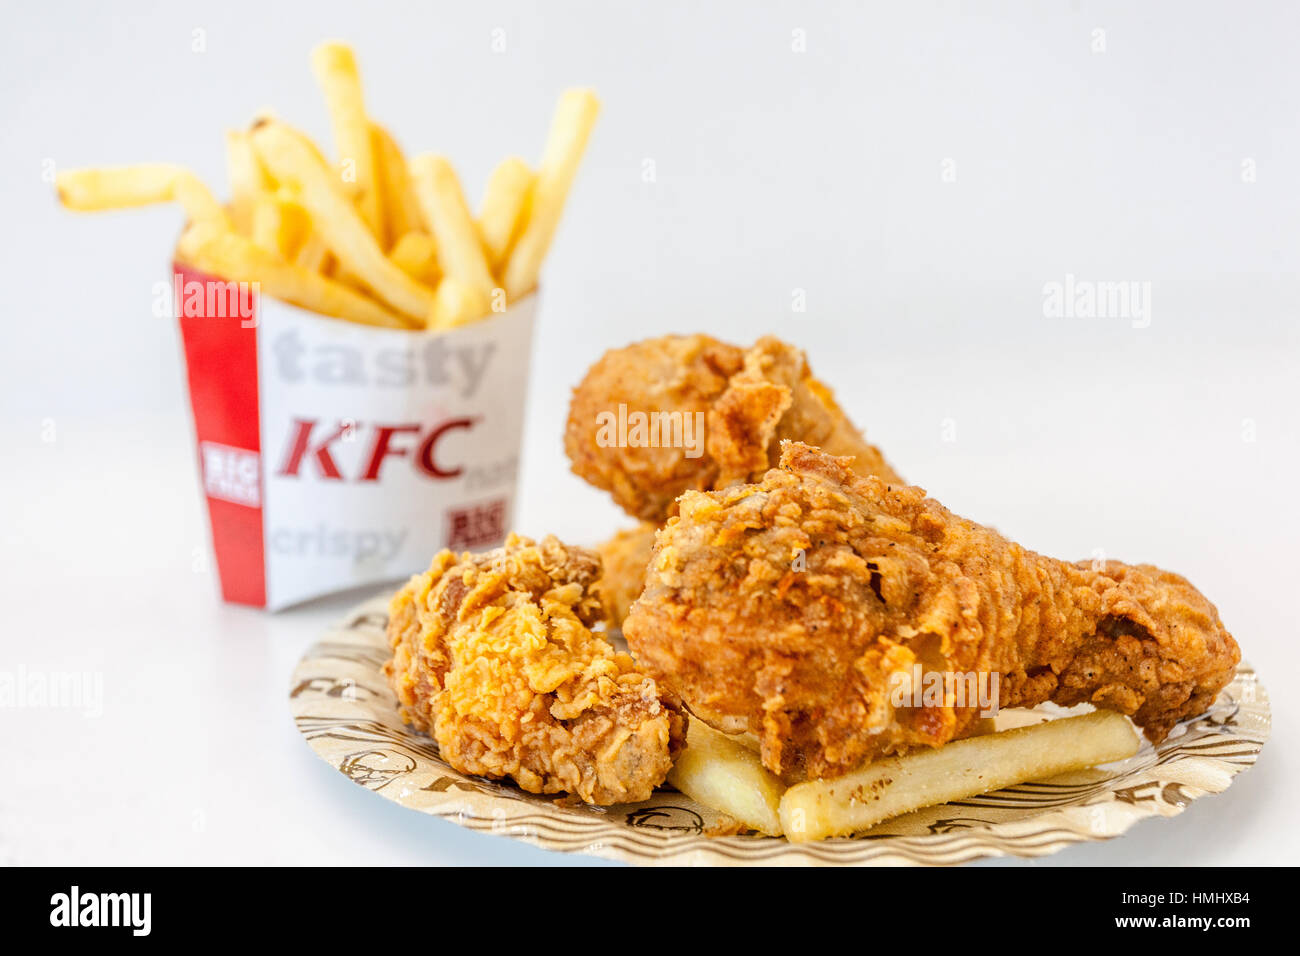 KFC meal, Kentucky Fried Chicken, French fries - Stock Image